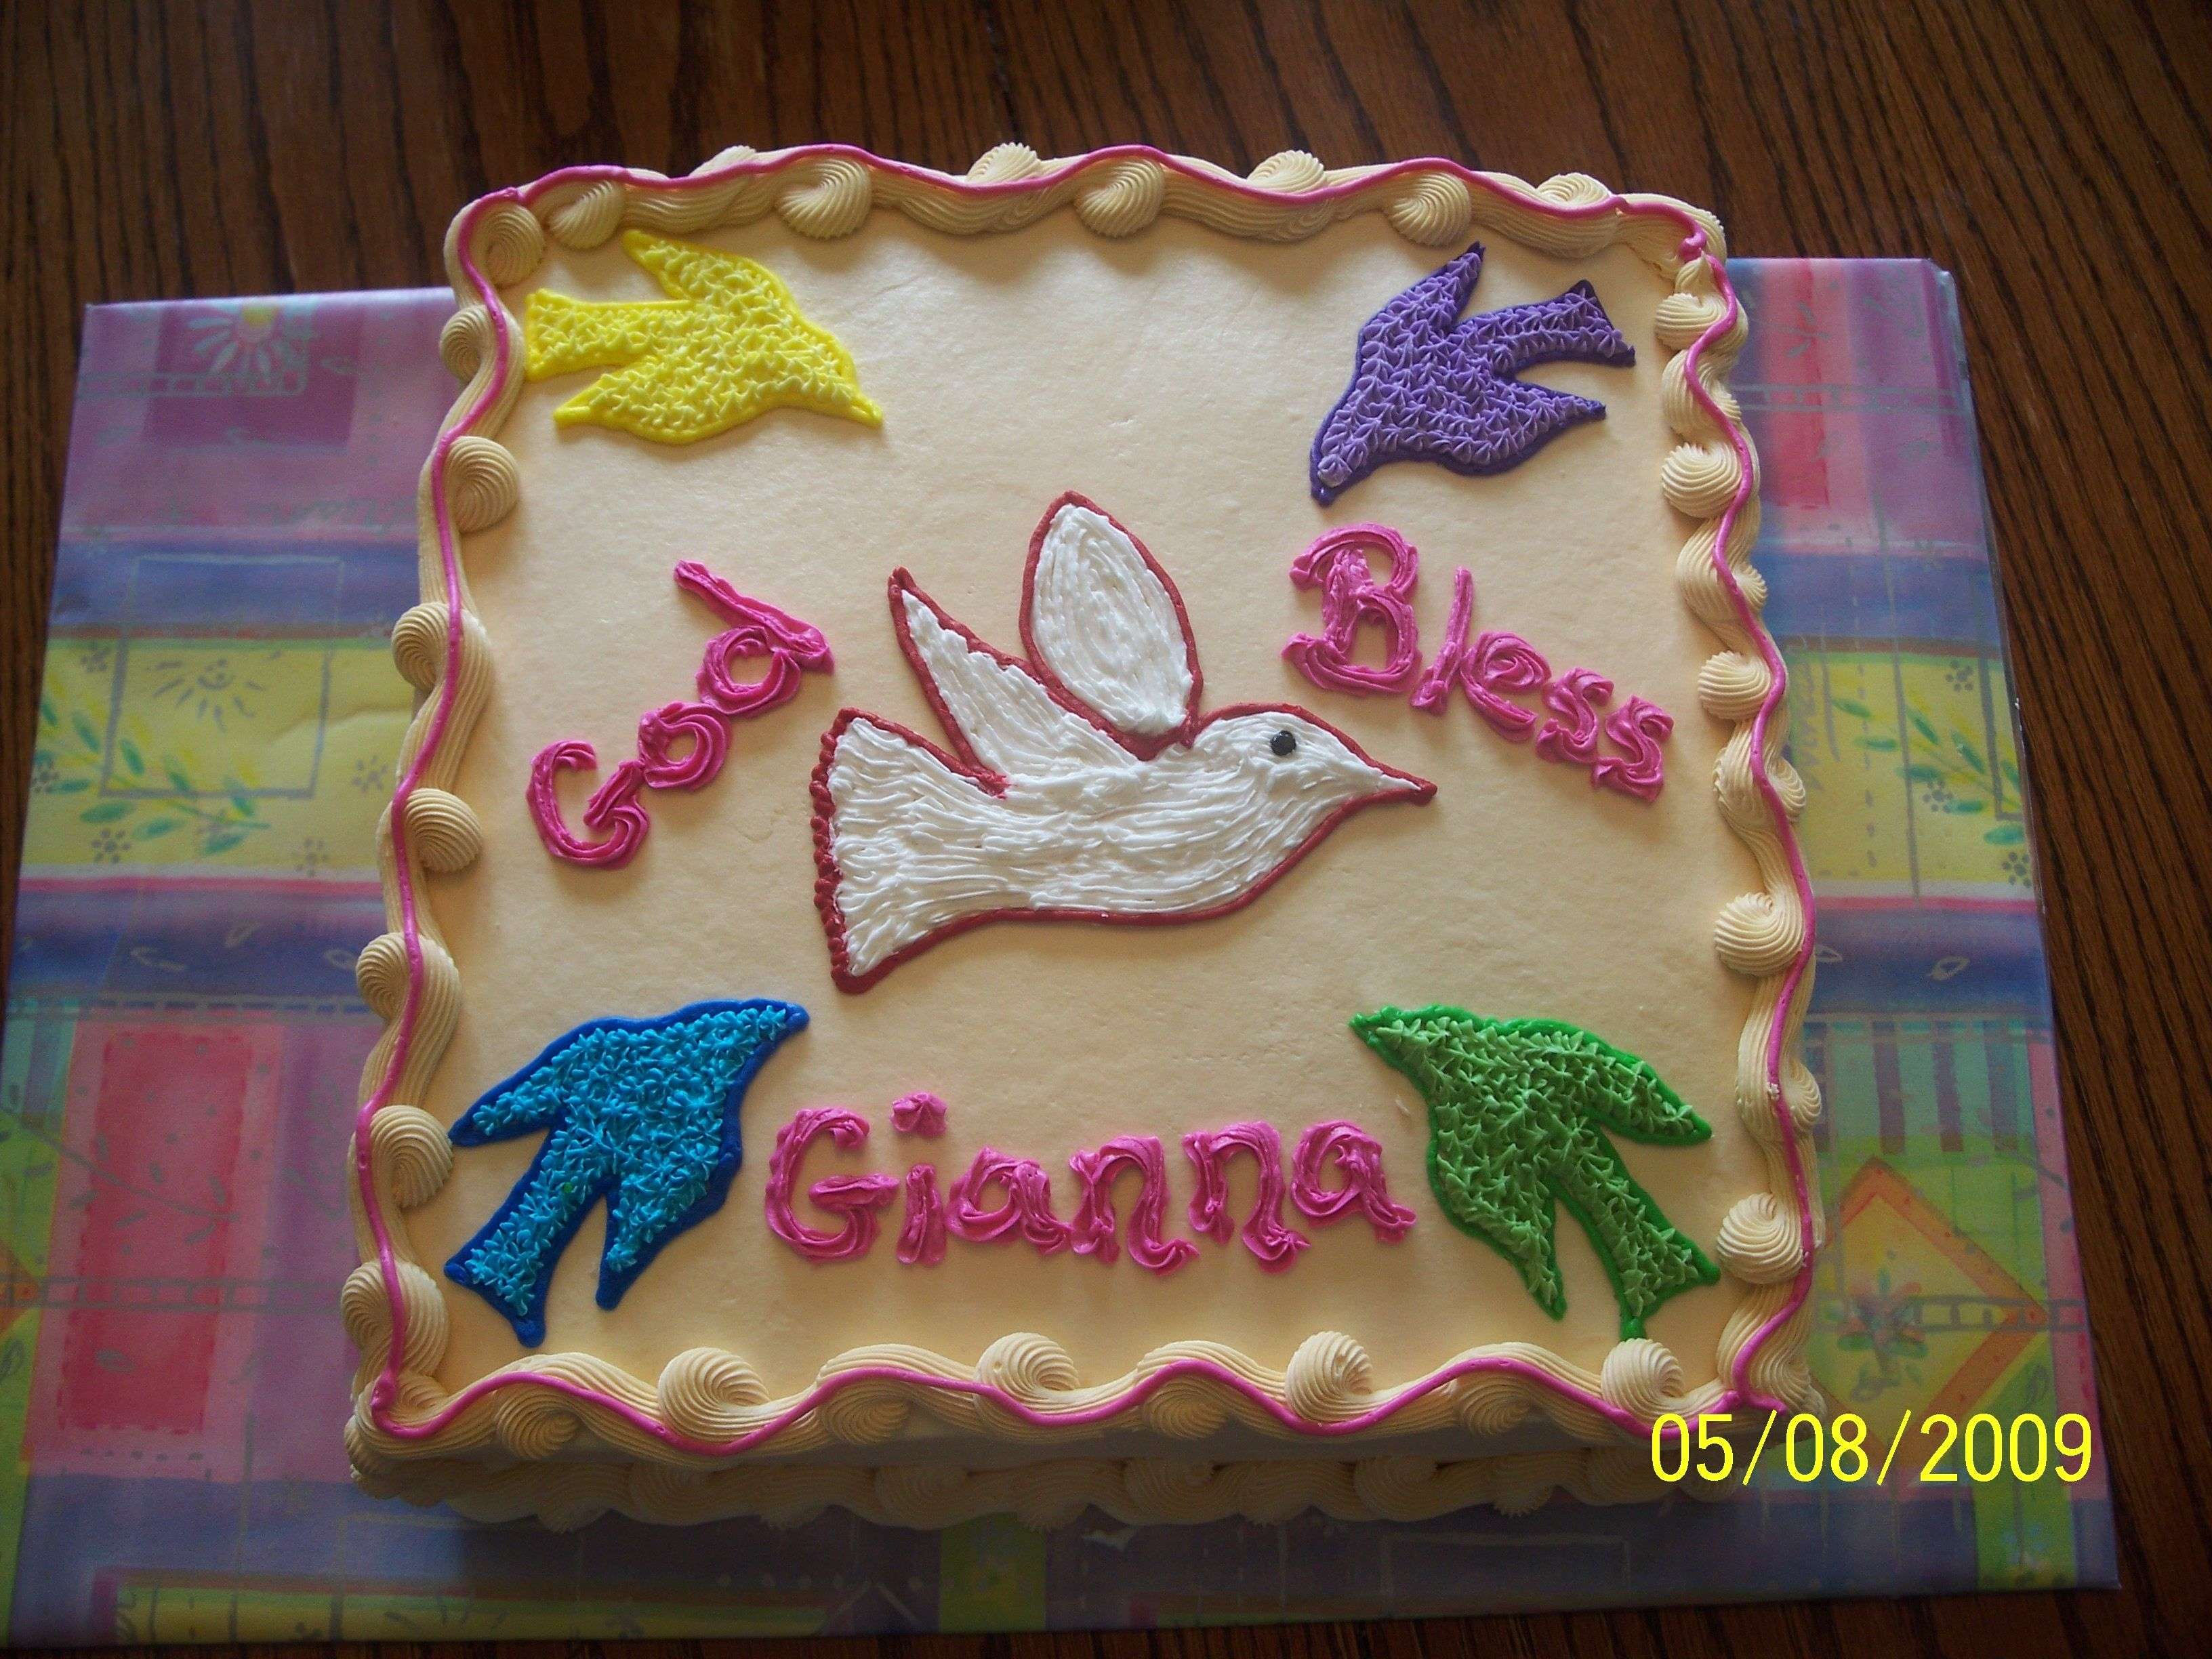 Gianna's Confirmation Gianna sent me a drawing of what she wanted her Confirmation cake to look like. I love it when kids design their own cakes! Her cake...